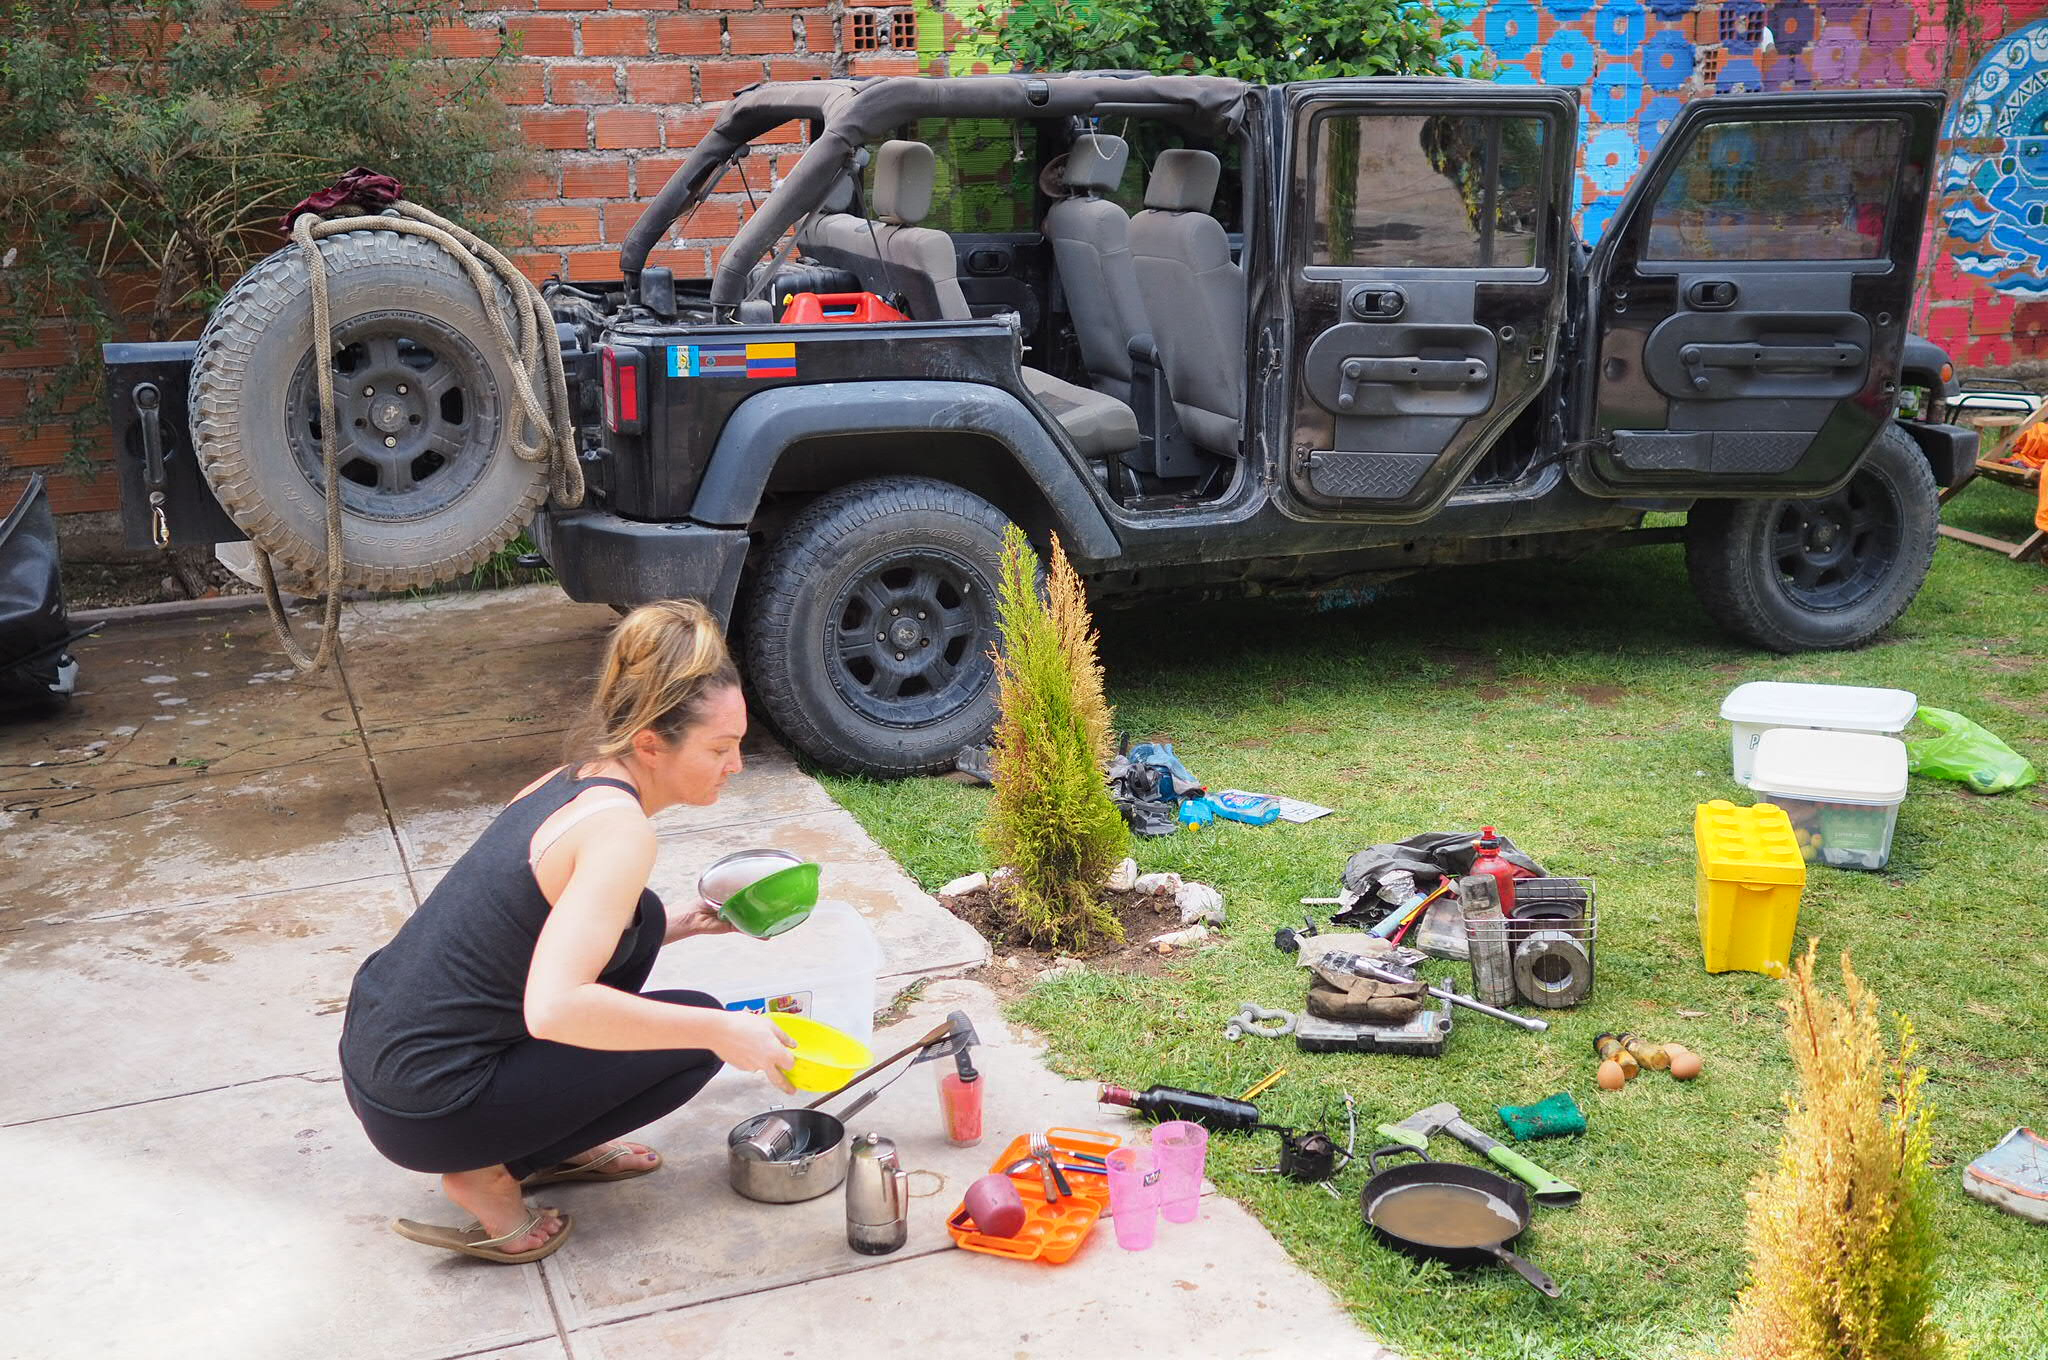 Somewhere in Sucre, Bolivia. My friend and I decided to give the Jeep a good clean-up before heading to Brazil.